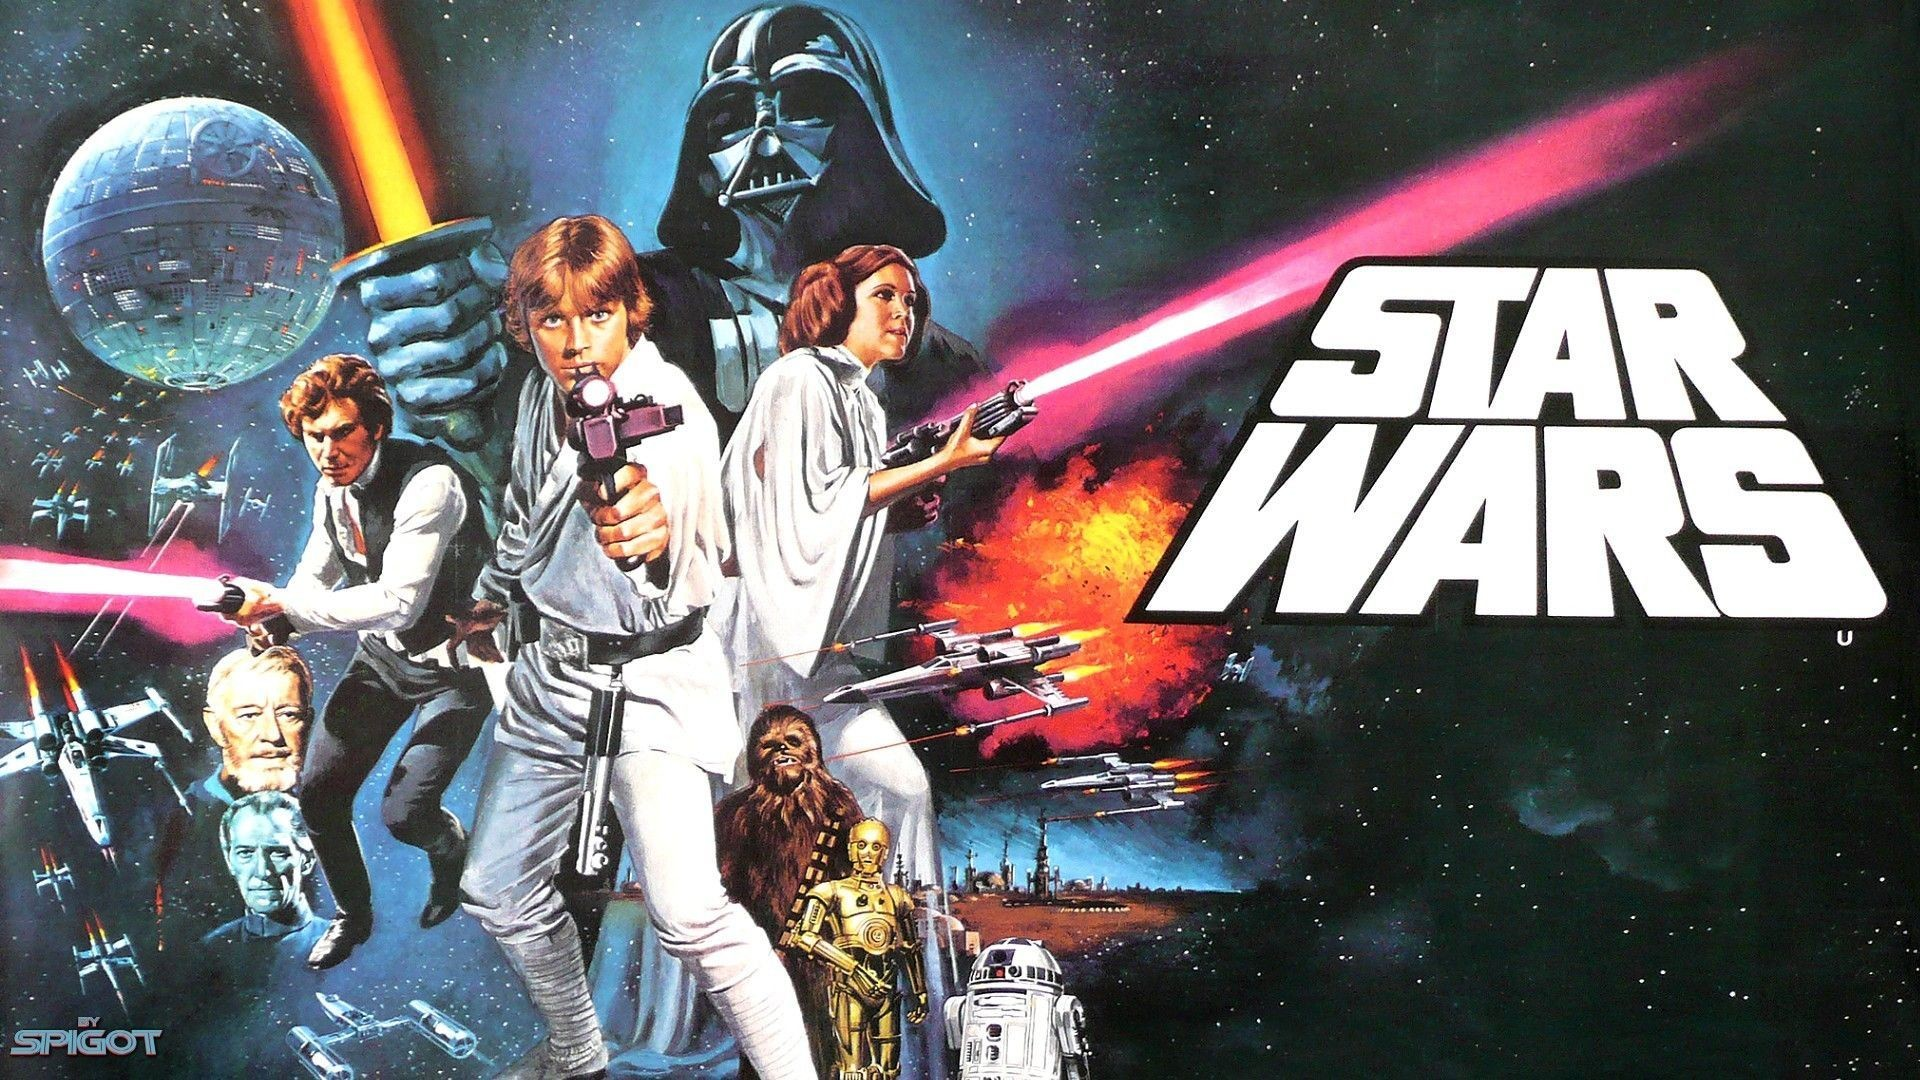 Star Wars Movie Poster Wallpaper 64 Images